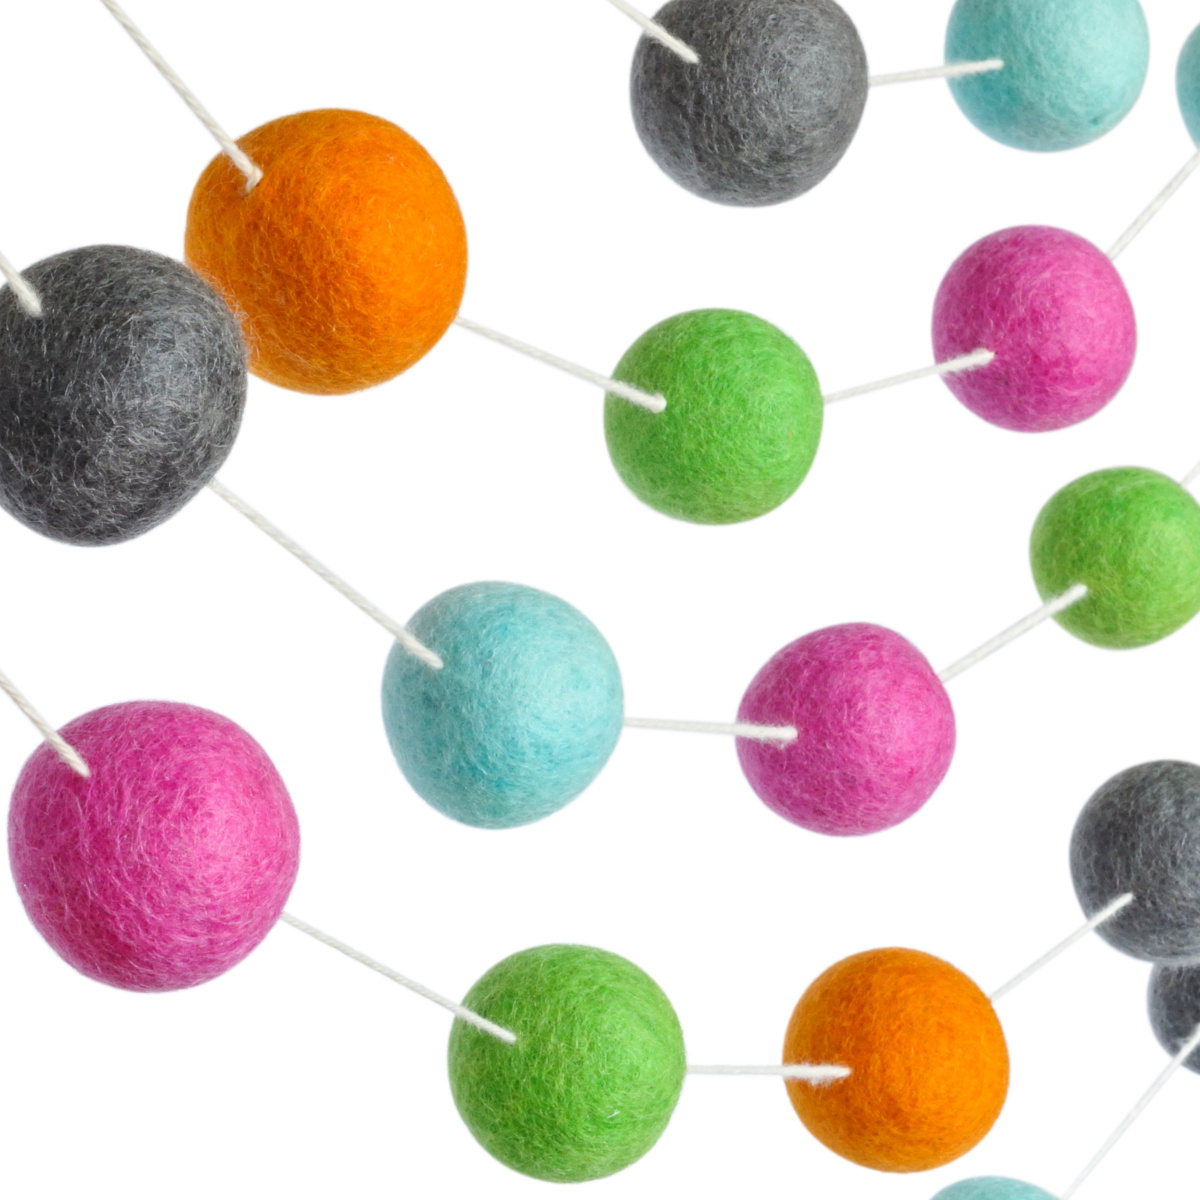 100 Wool Felt Ball Garland Large 1 5 Pom Pom Balls Colorful Banner Is 10 Feet Long Bright Colored Kids Teepee Tent And Birthday Party Decorations Perfect For Kid S Room And Nursery Decor